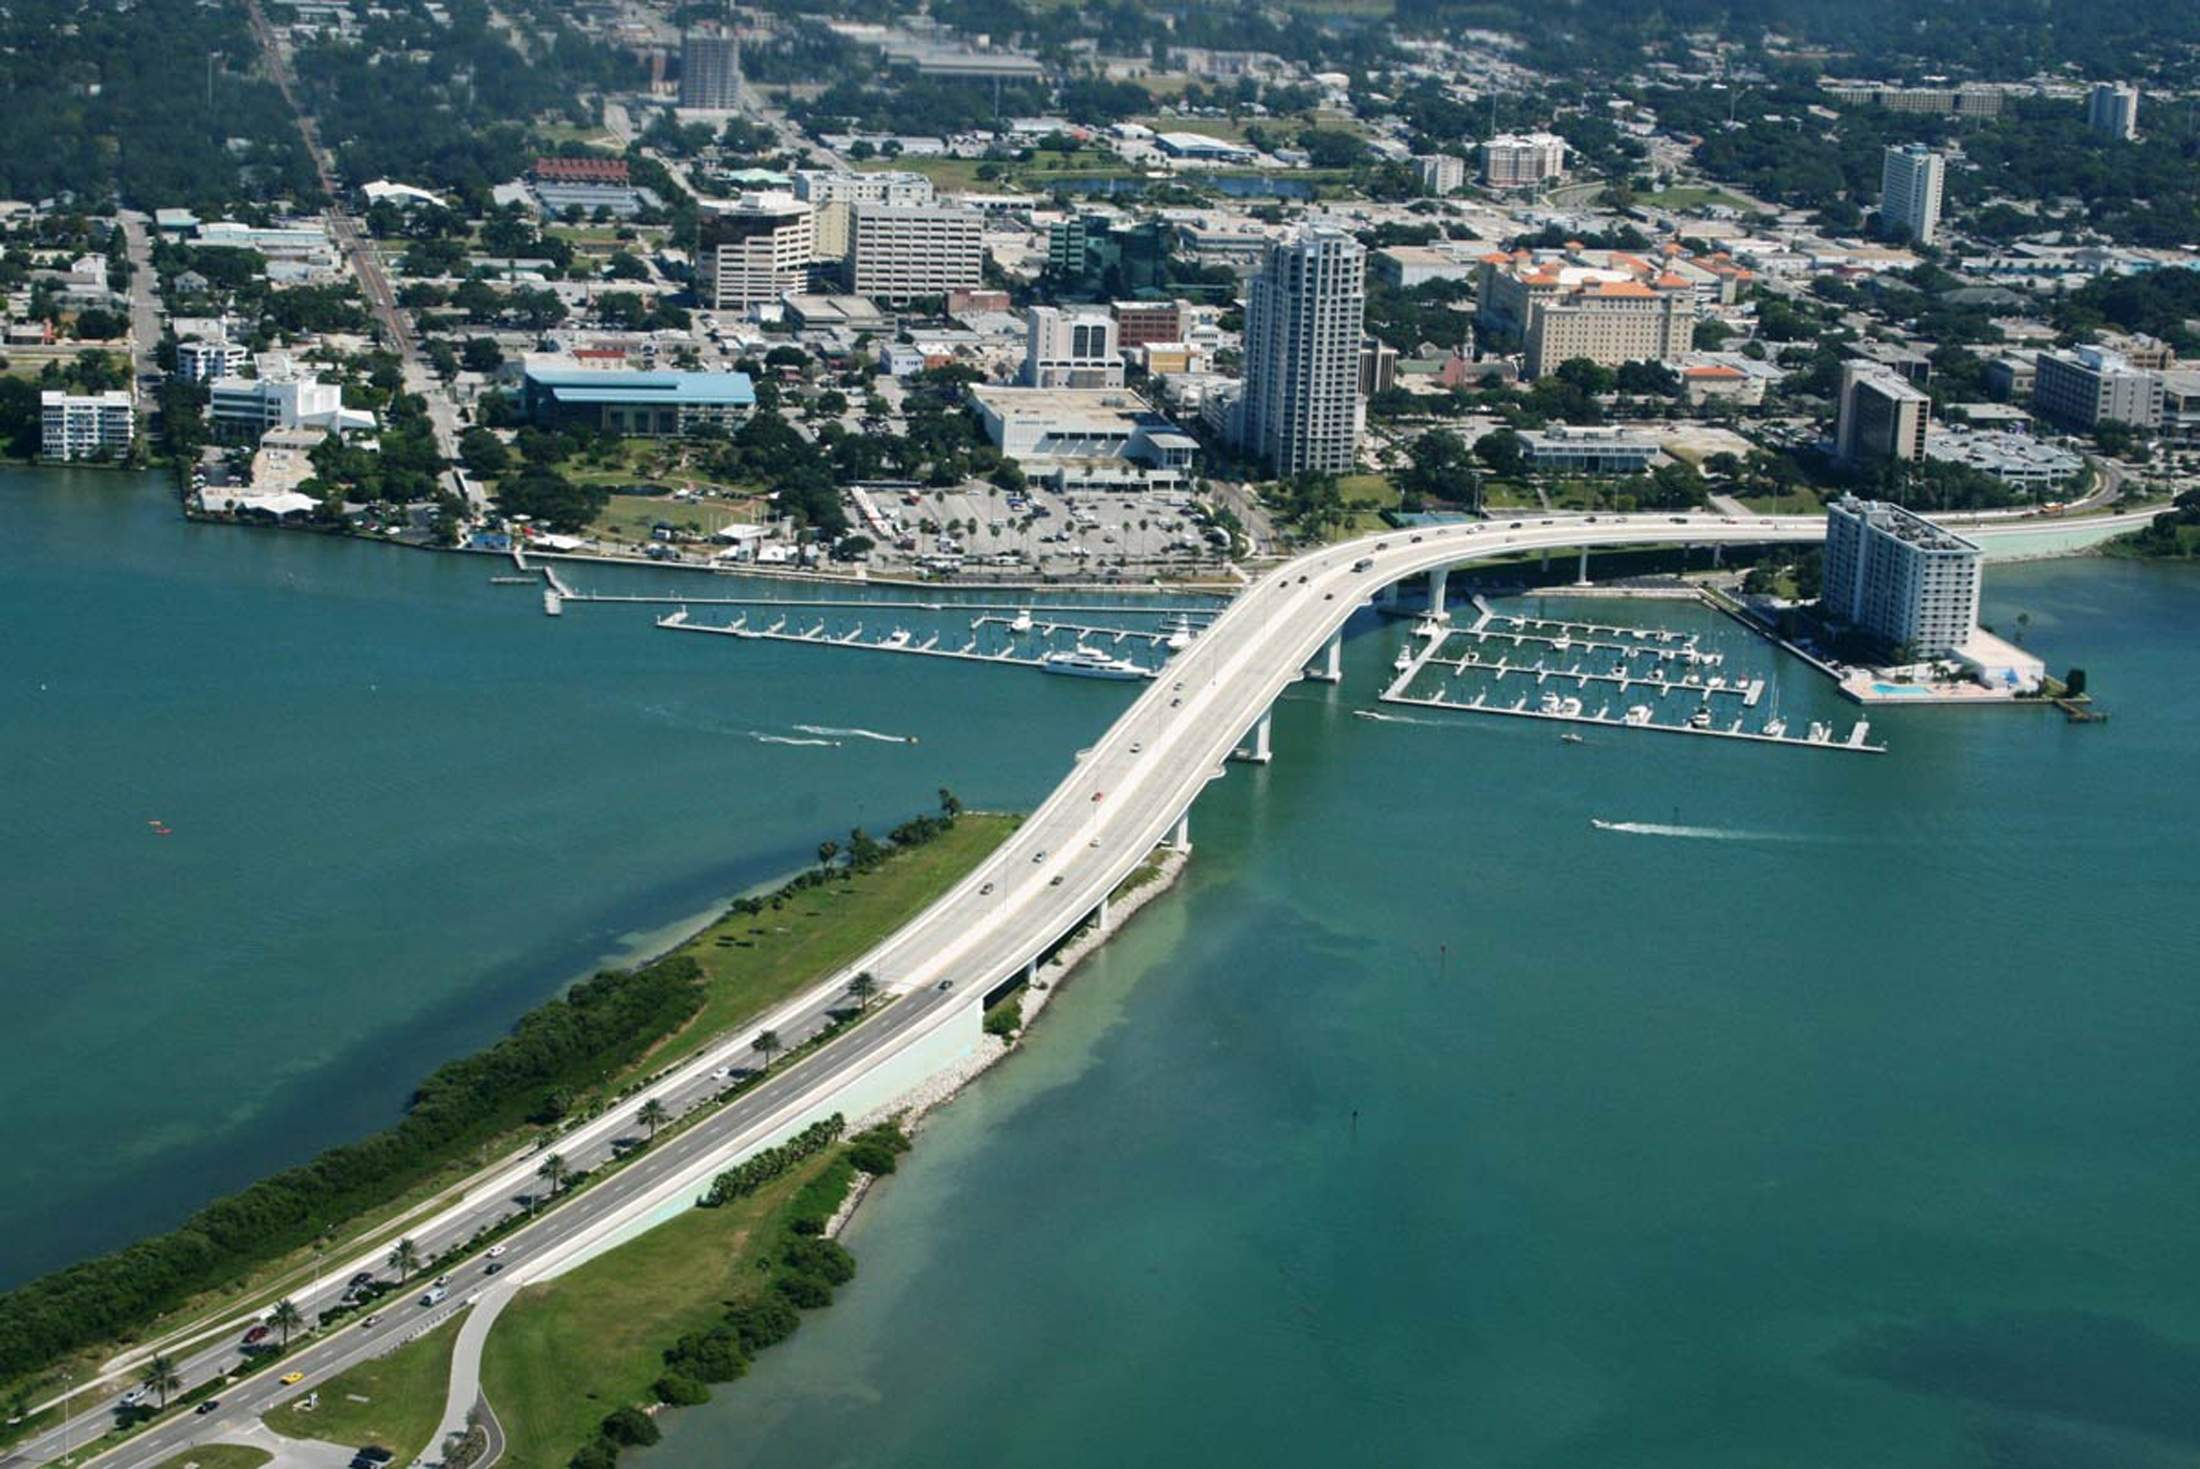 Clearwater aerial photo